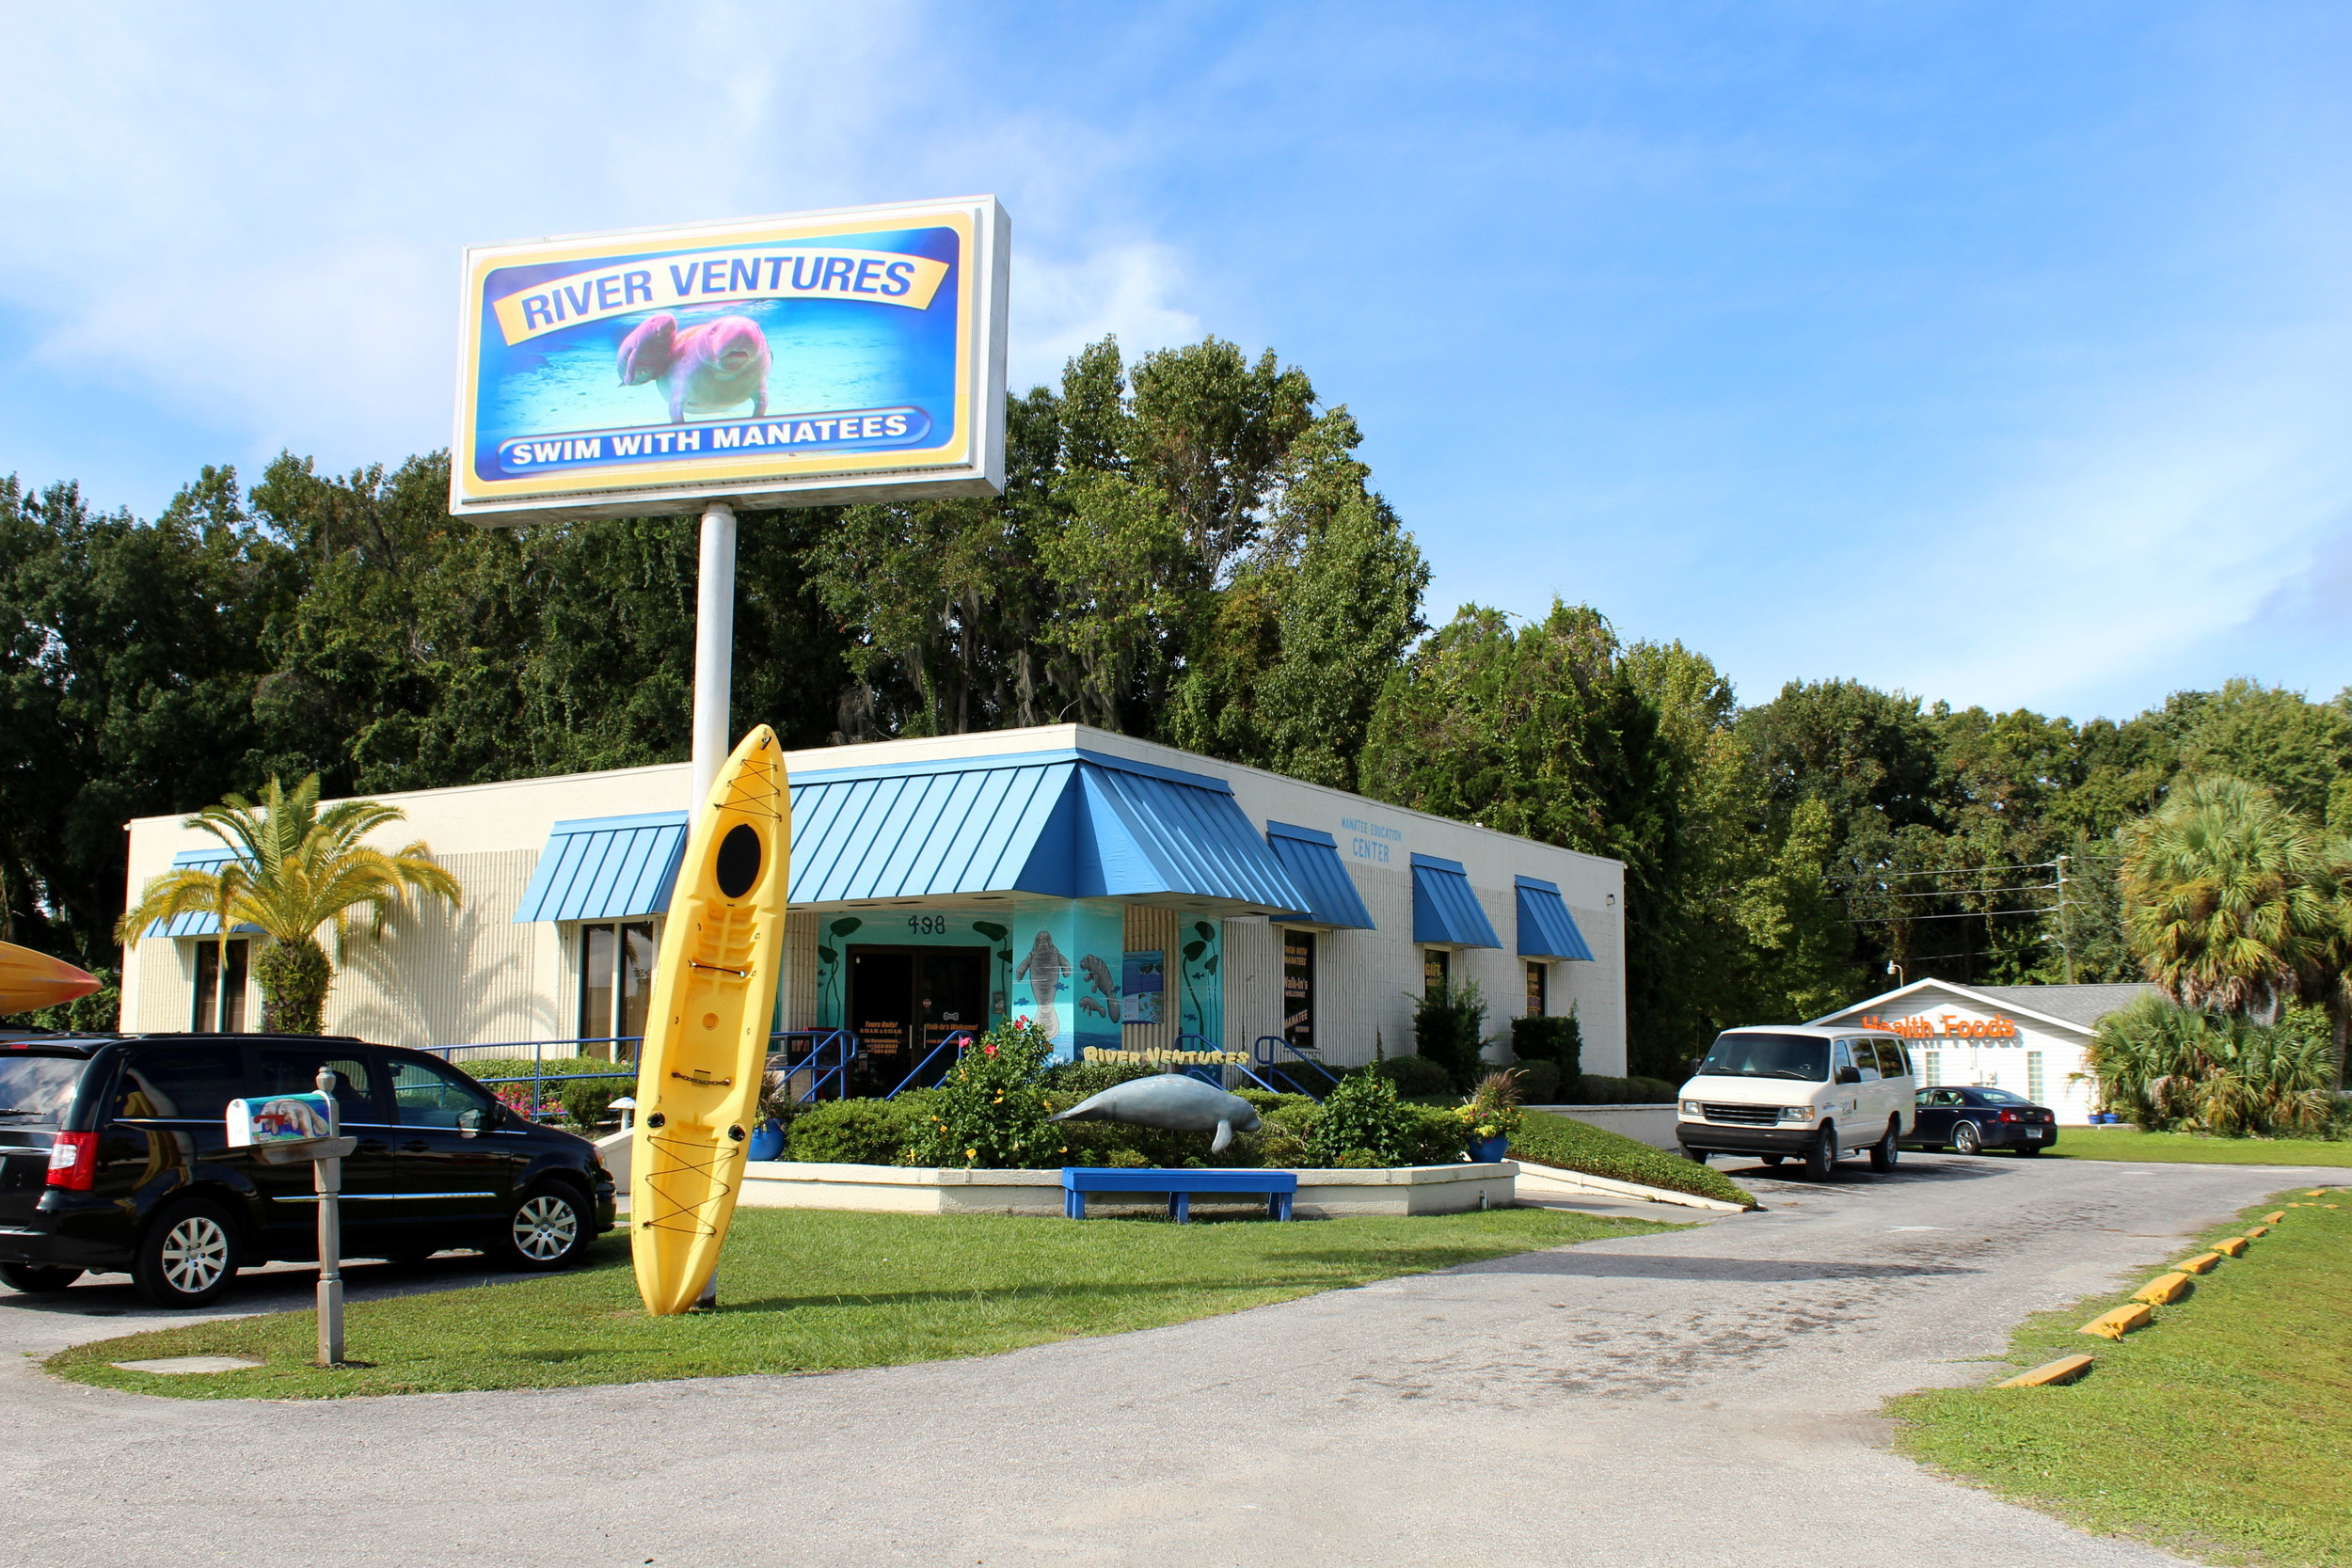 river ventures, manatee tour and education center